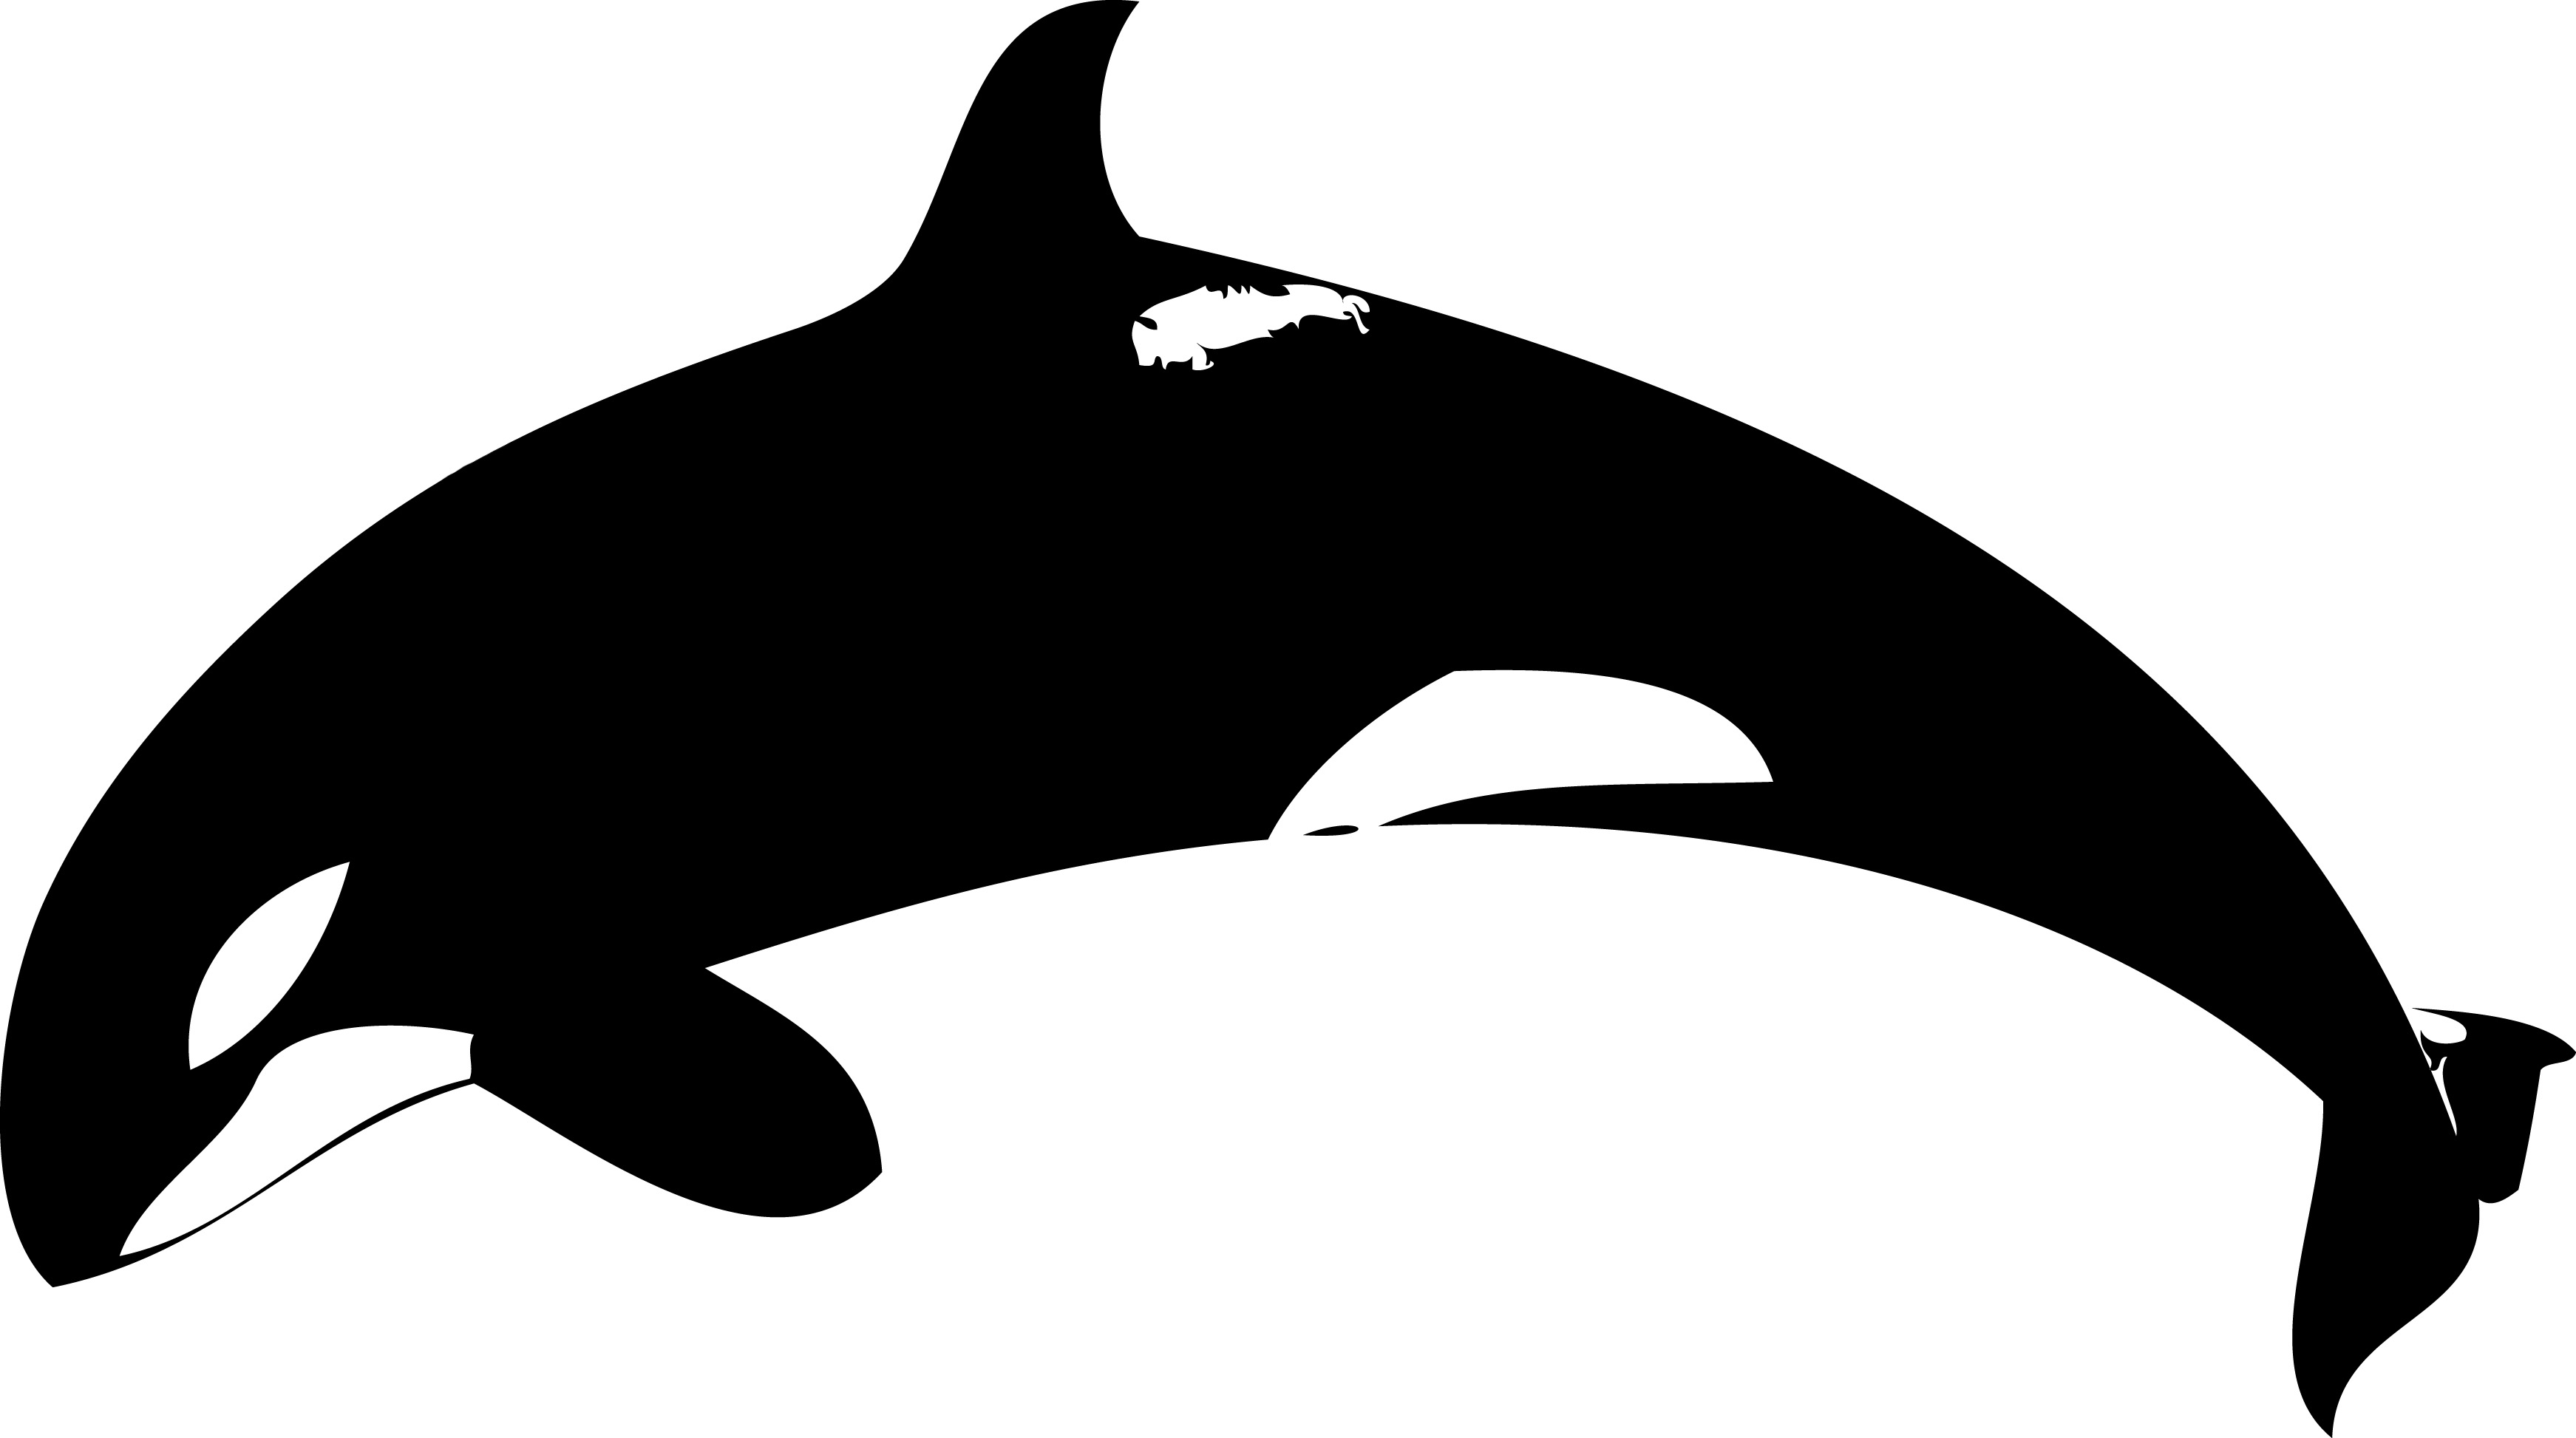 Orca clipart #6, Download drawings